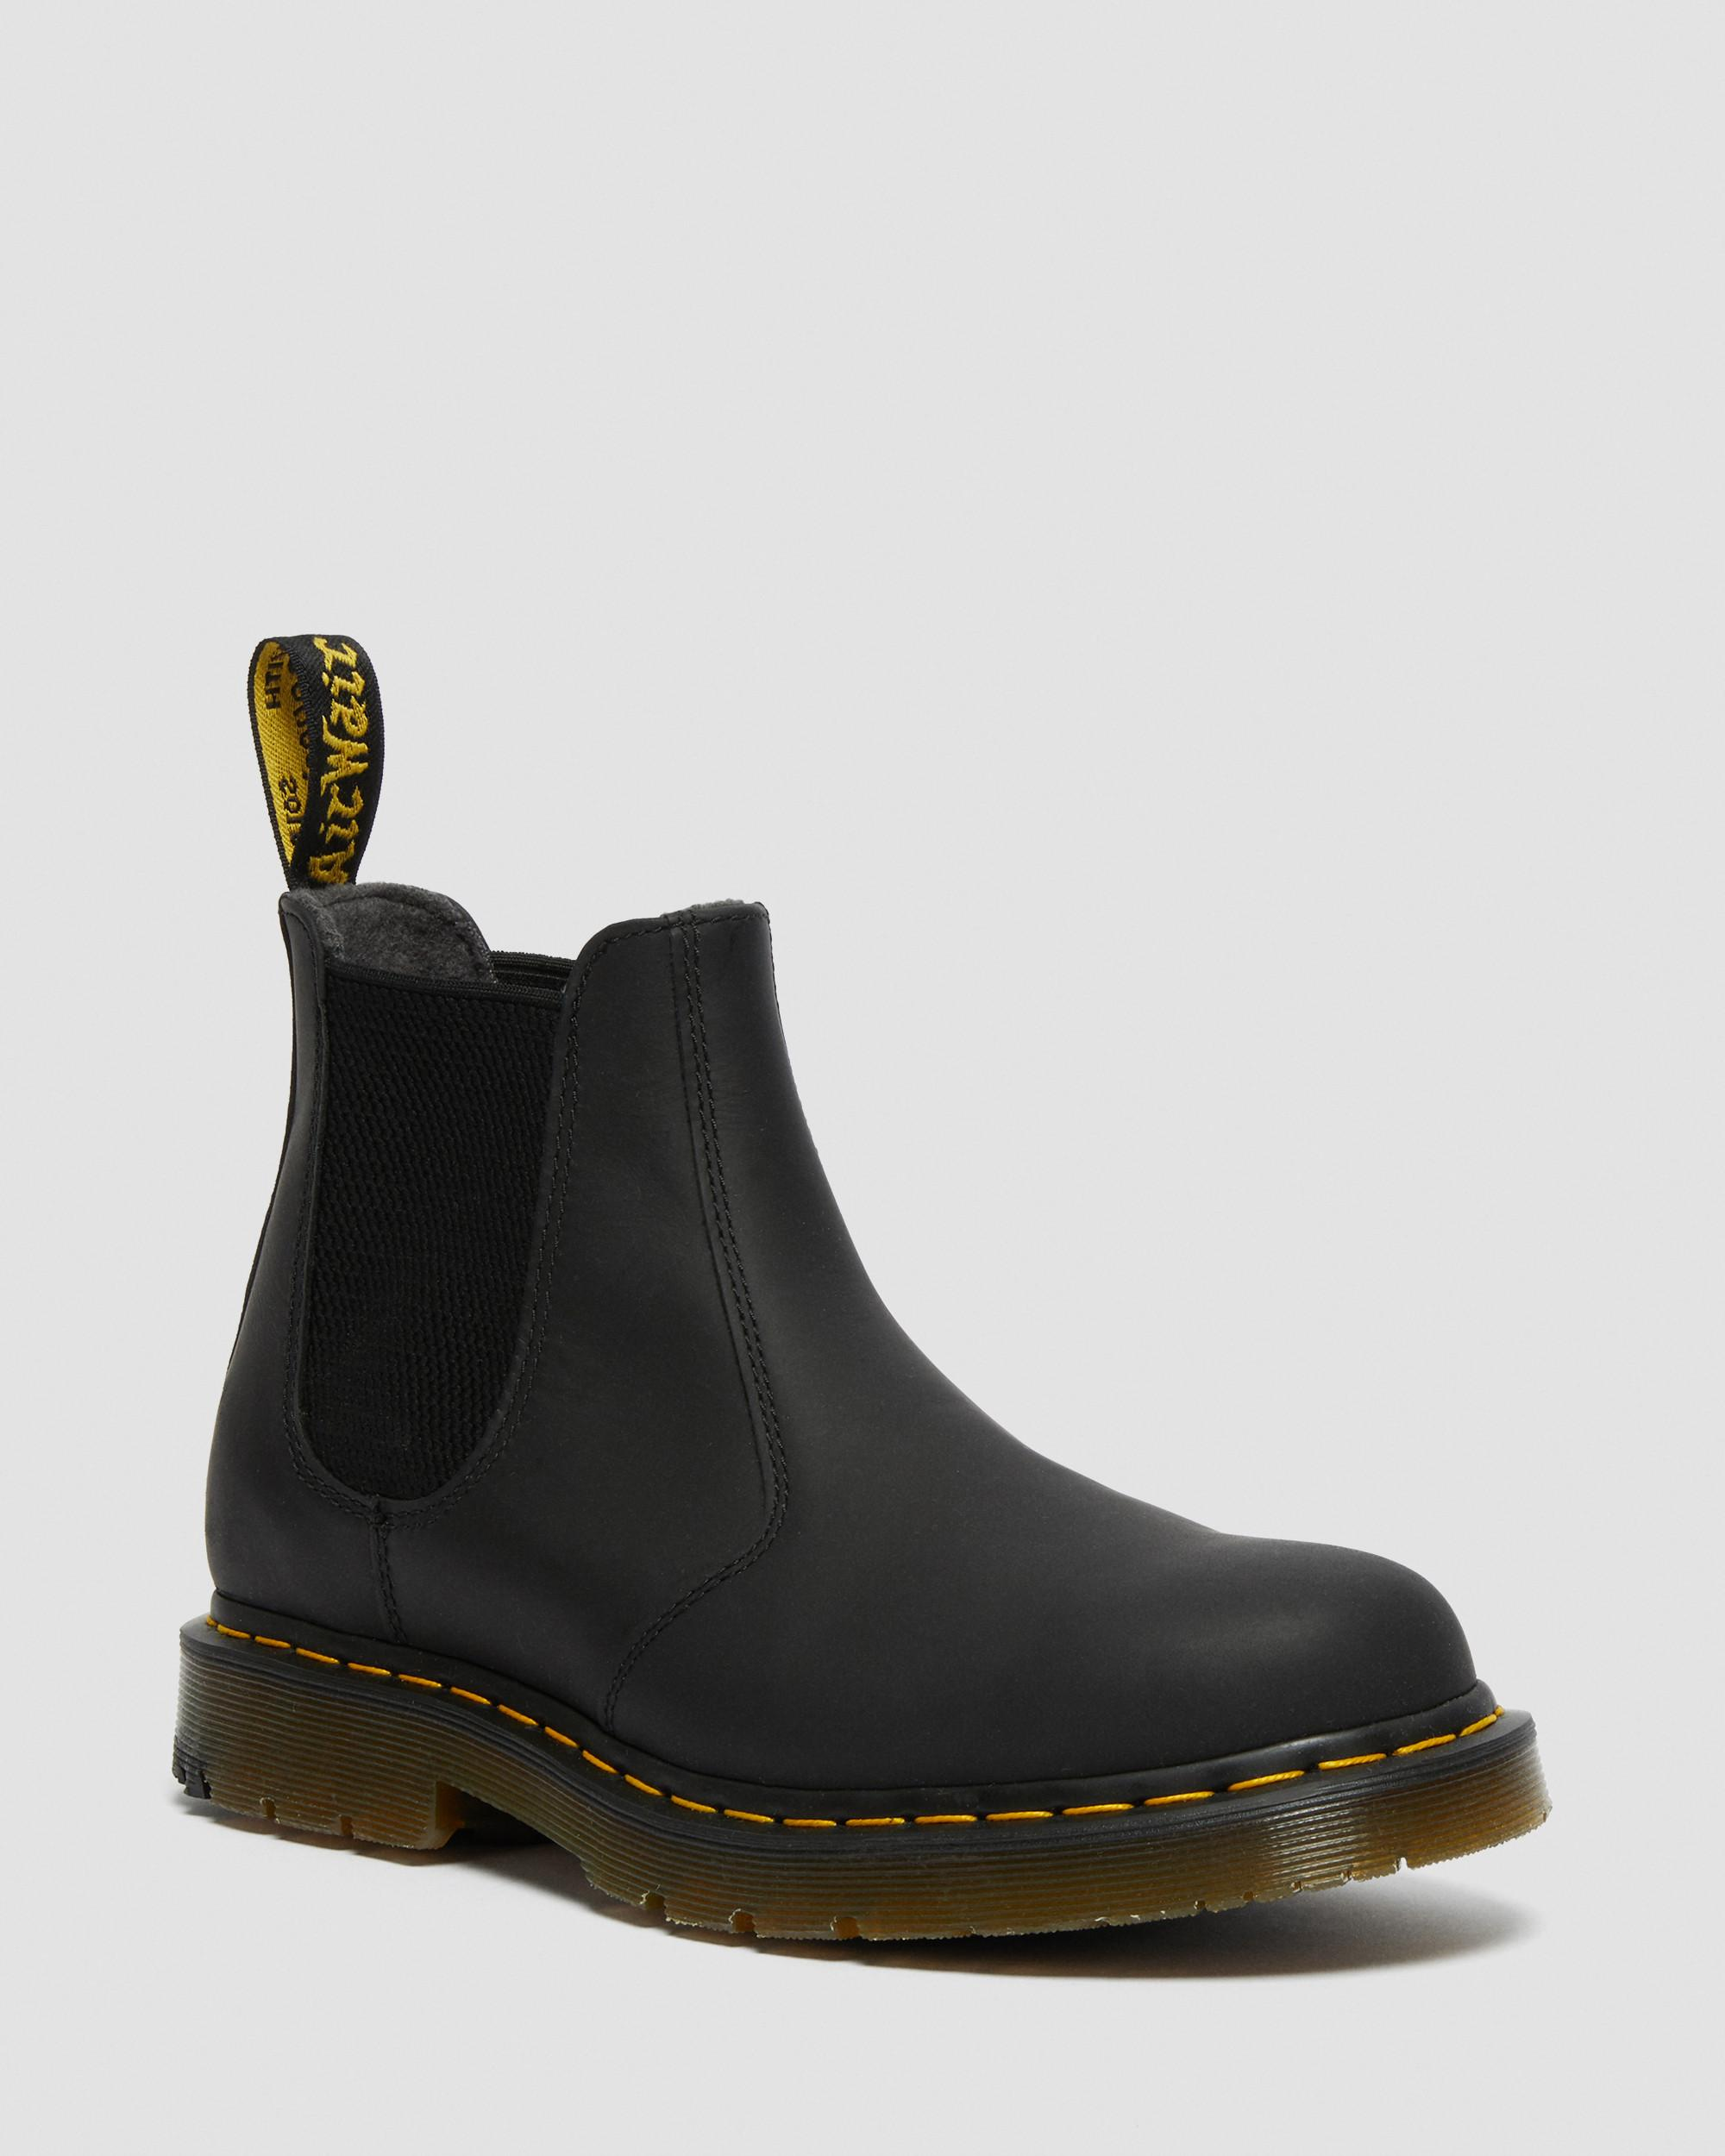 dr martens shoes price